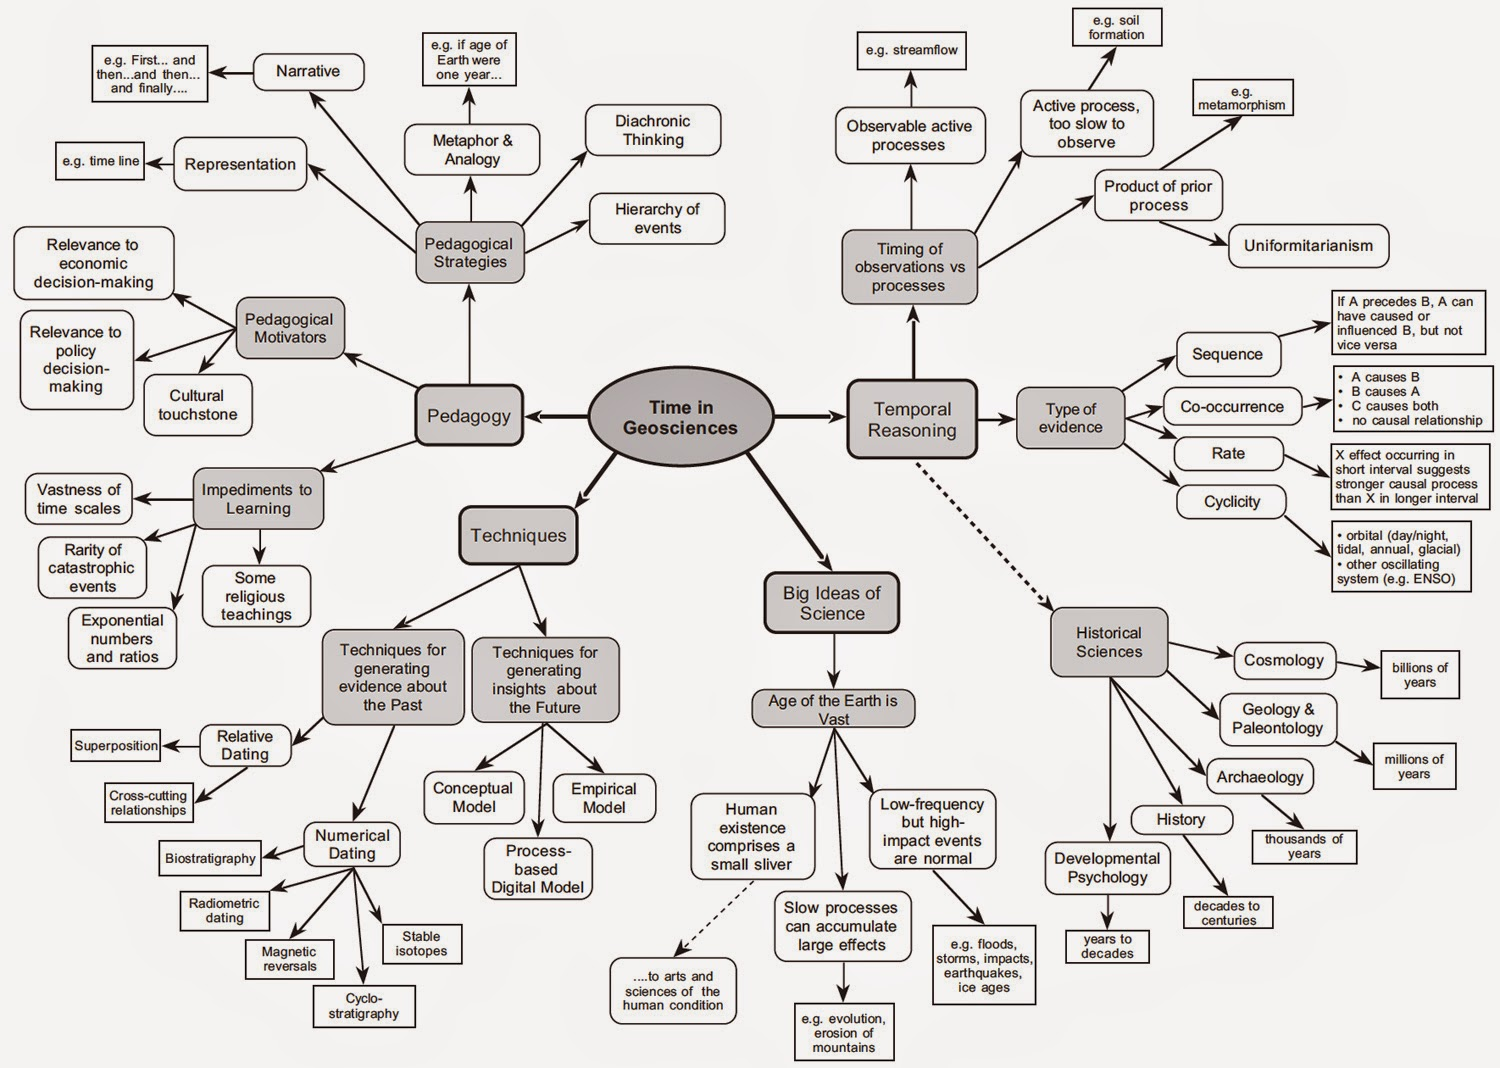 and cathryn manduca carleton college northfield mn have produced a revealing mind map of deep time in their book earth and mind ii which they edited